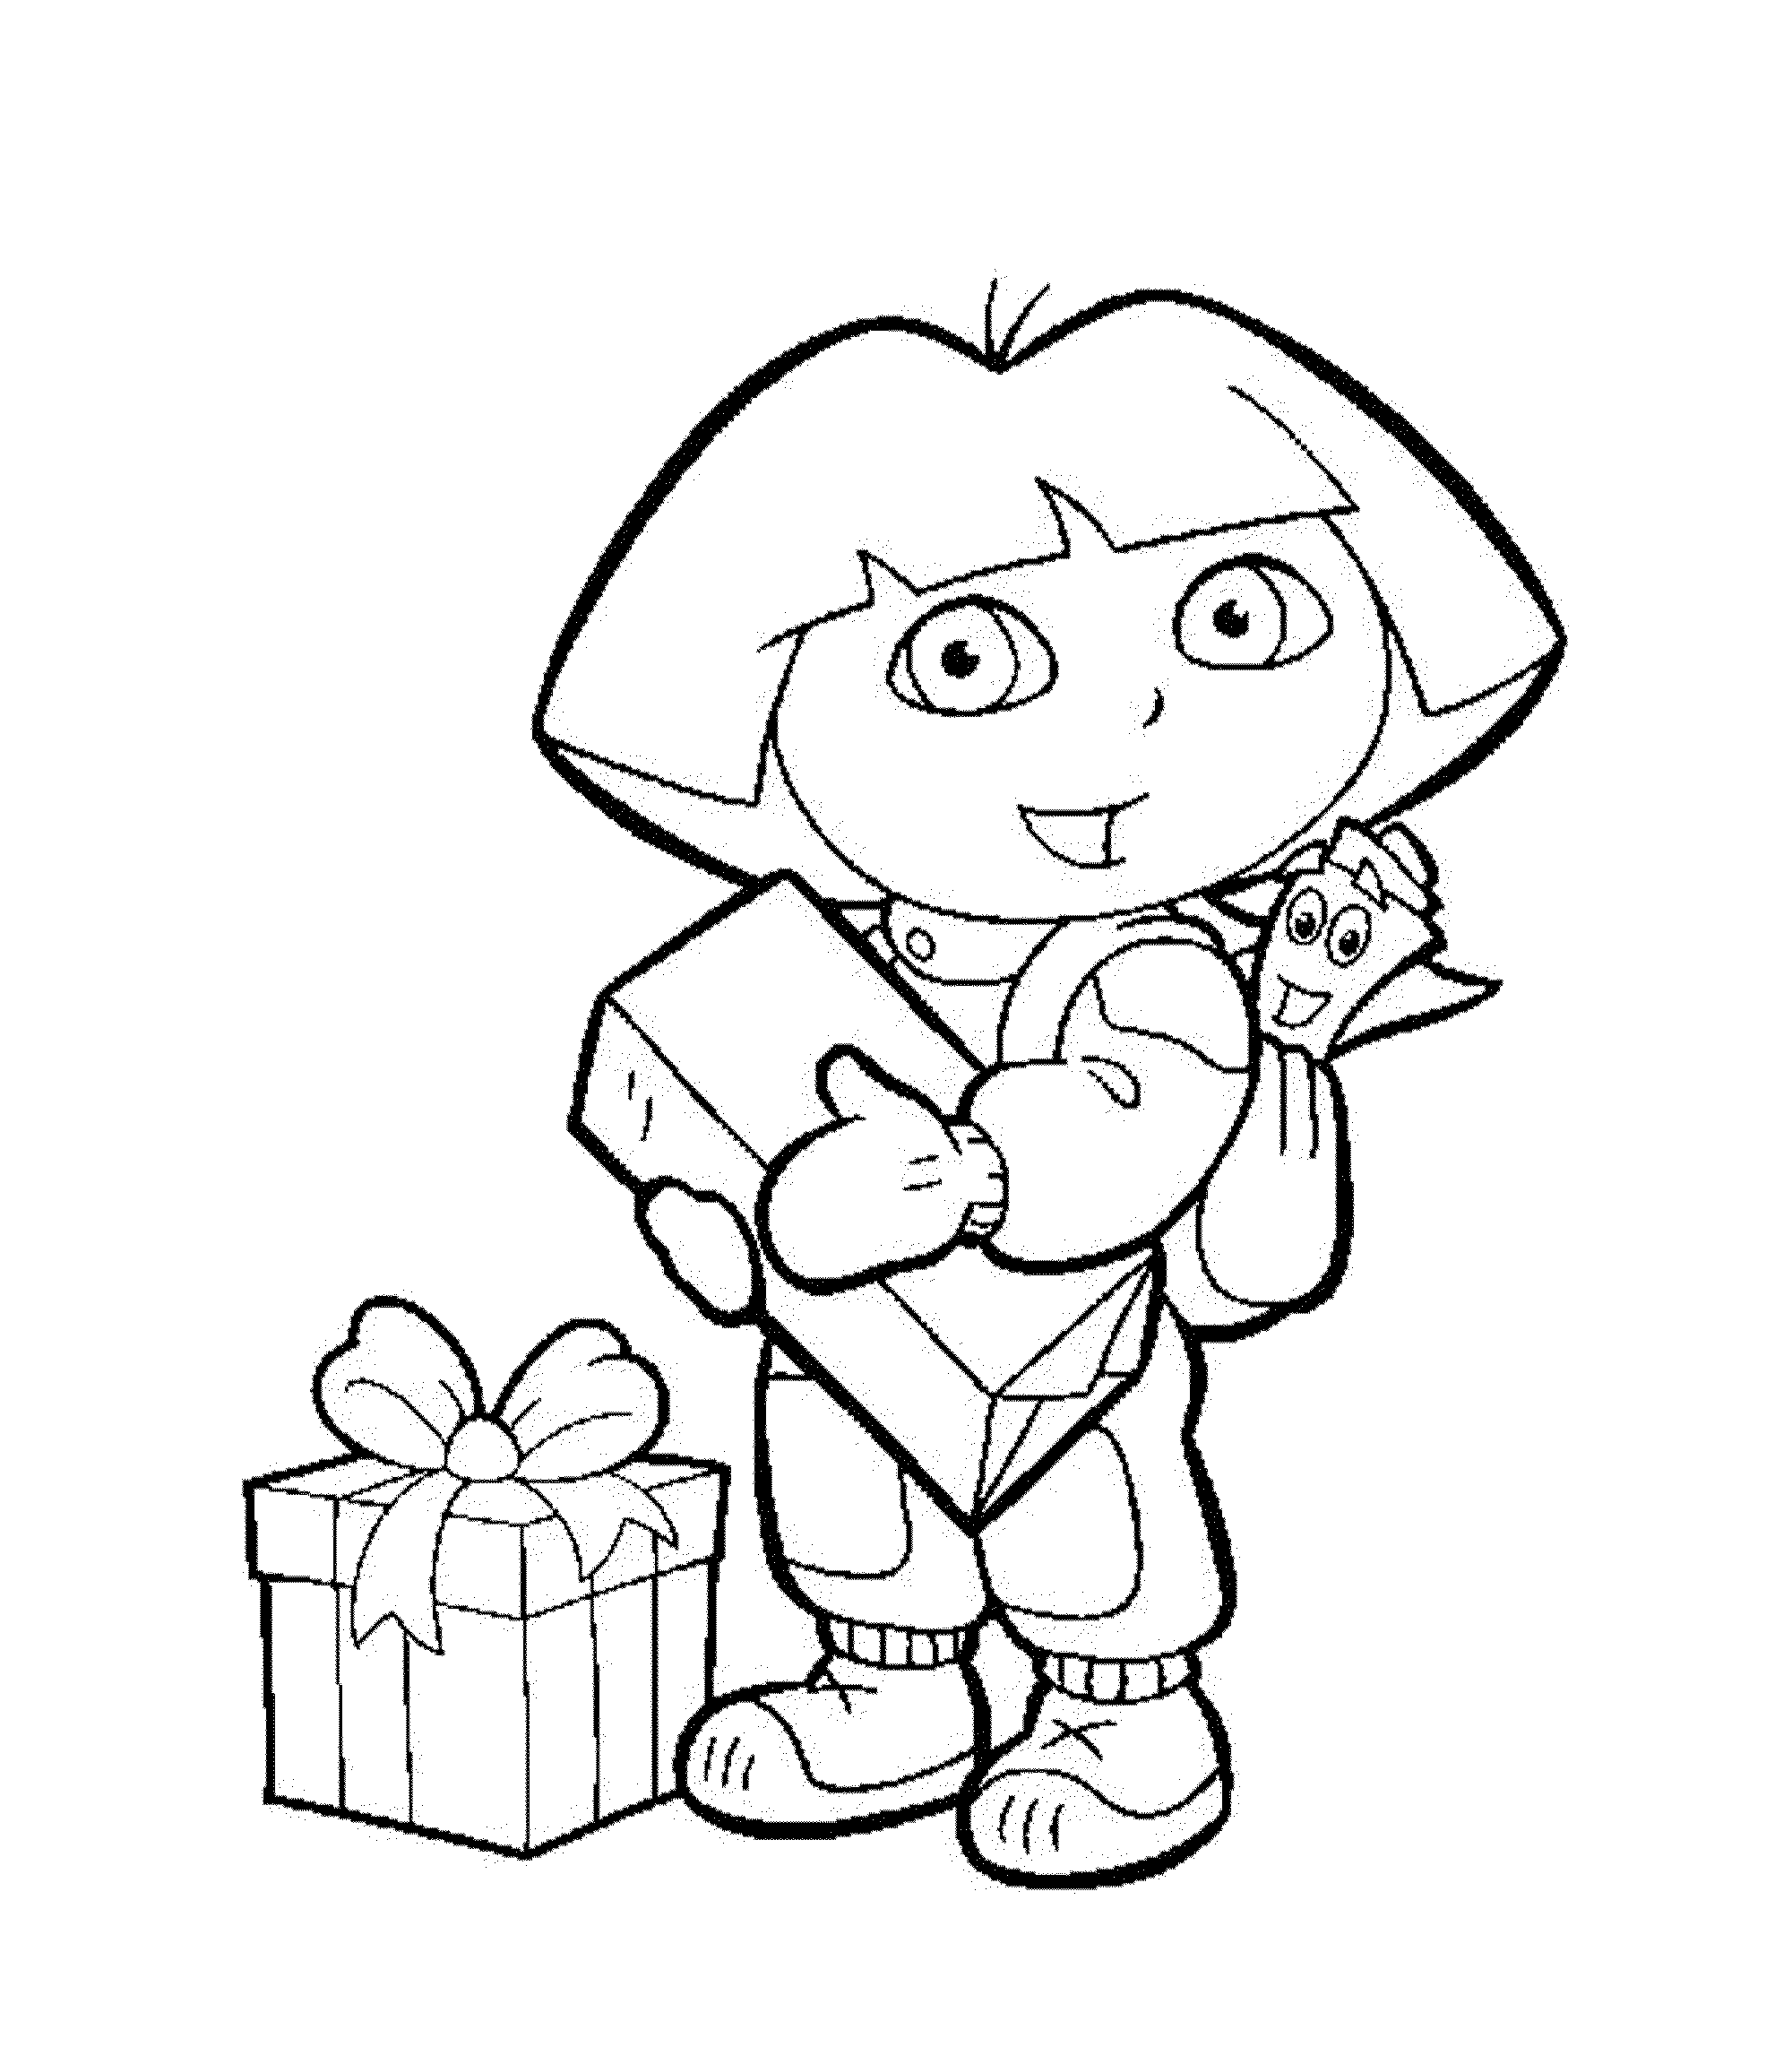 Dora coloring pages printable - Shop Related Products